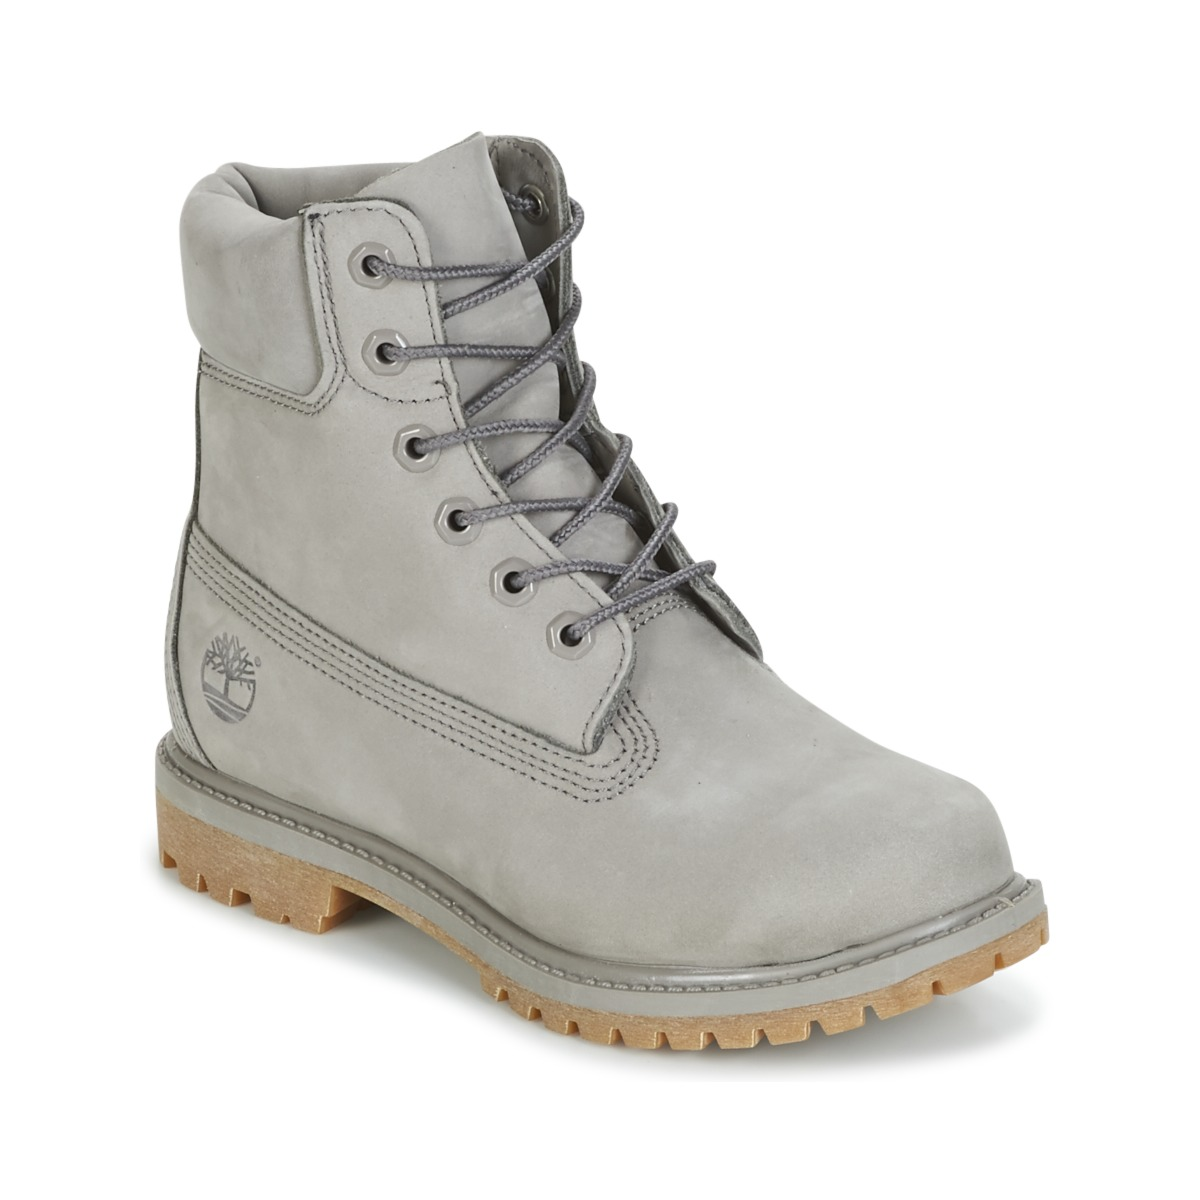 24243b1585 Timberland 6IN PREMIUM BOOT - W Grey - Free delivery